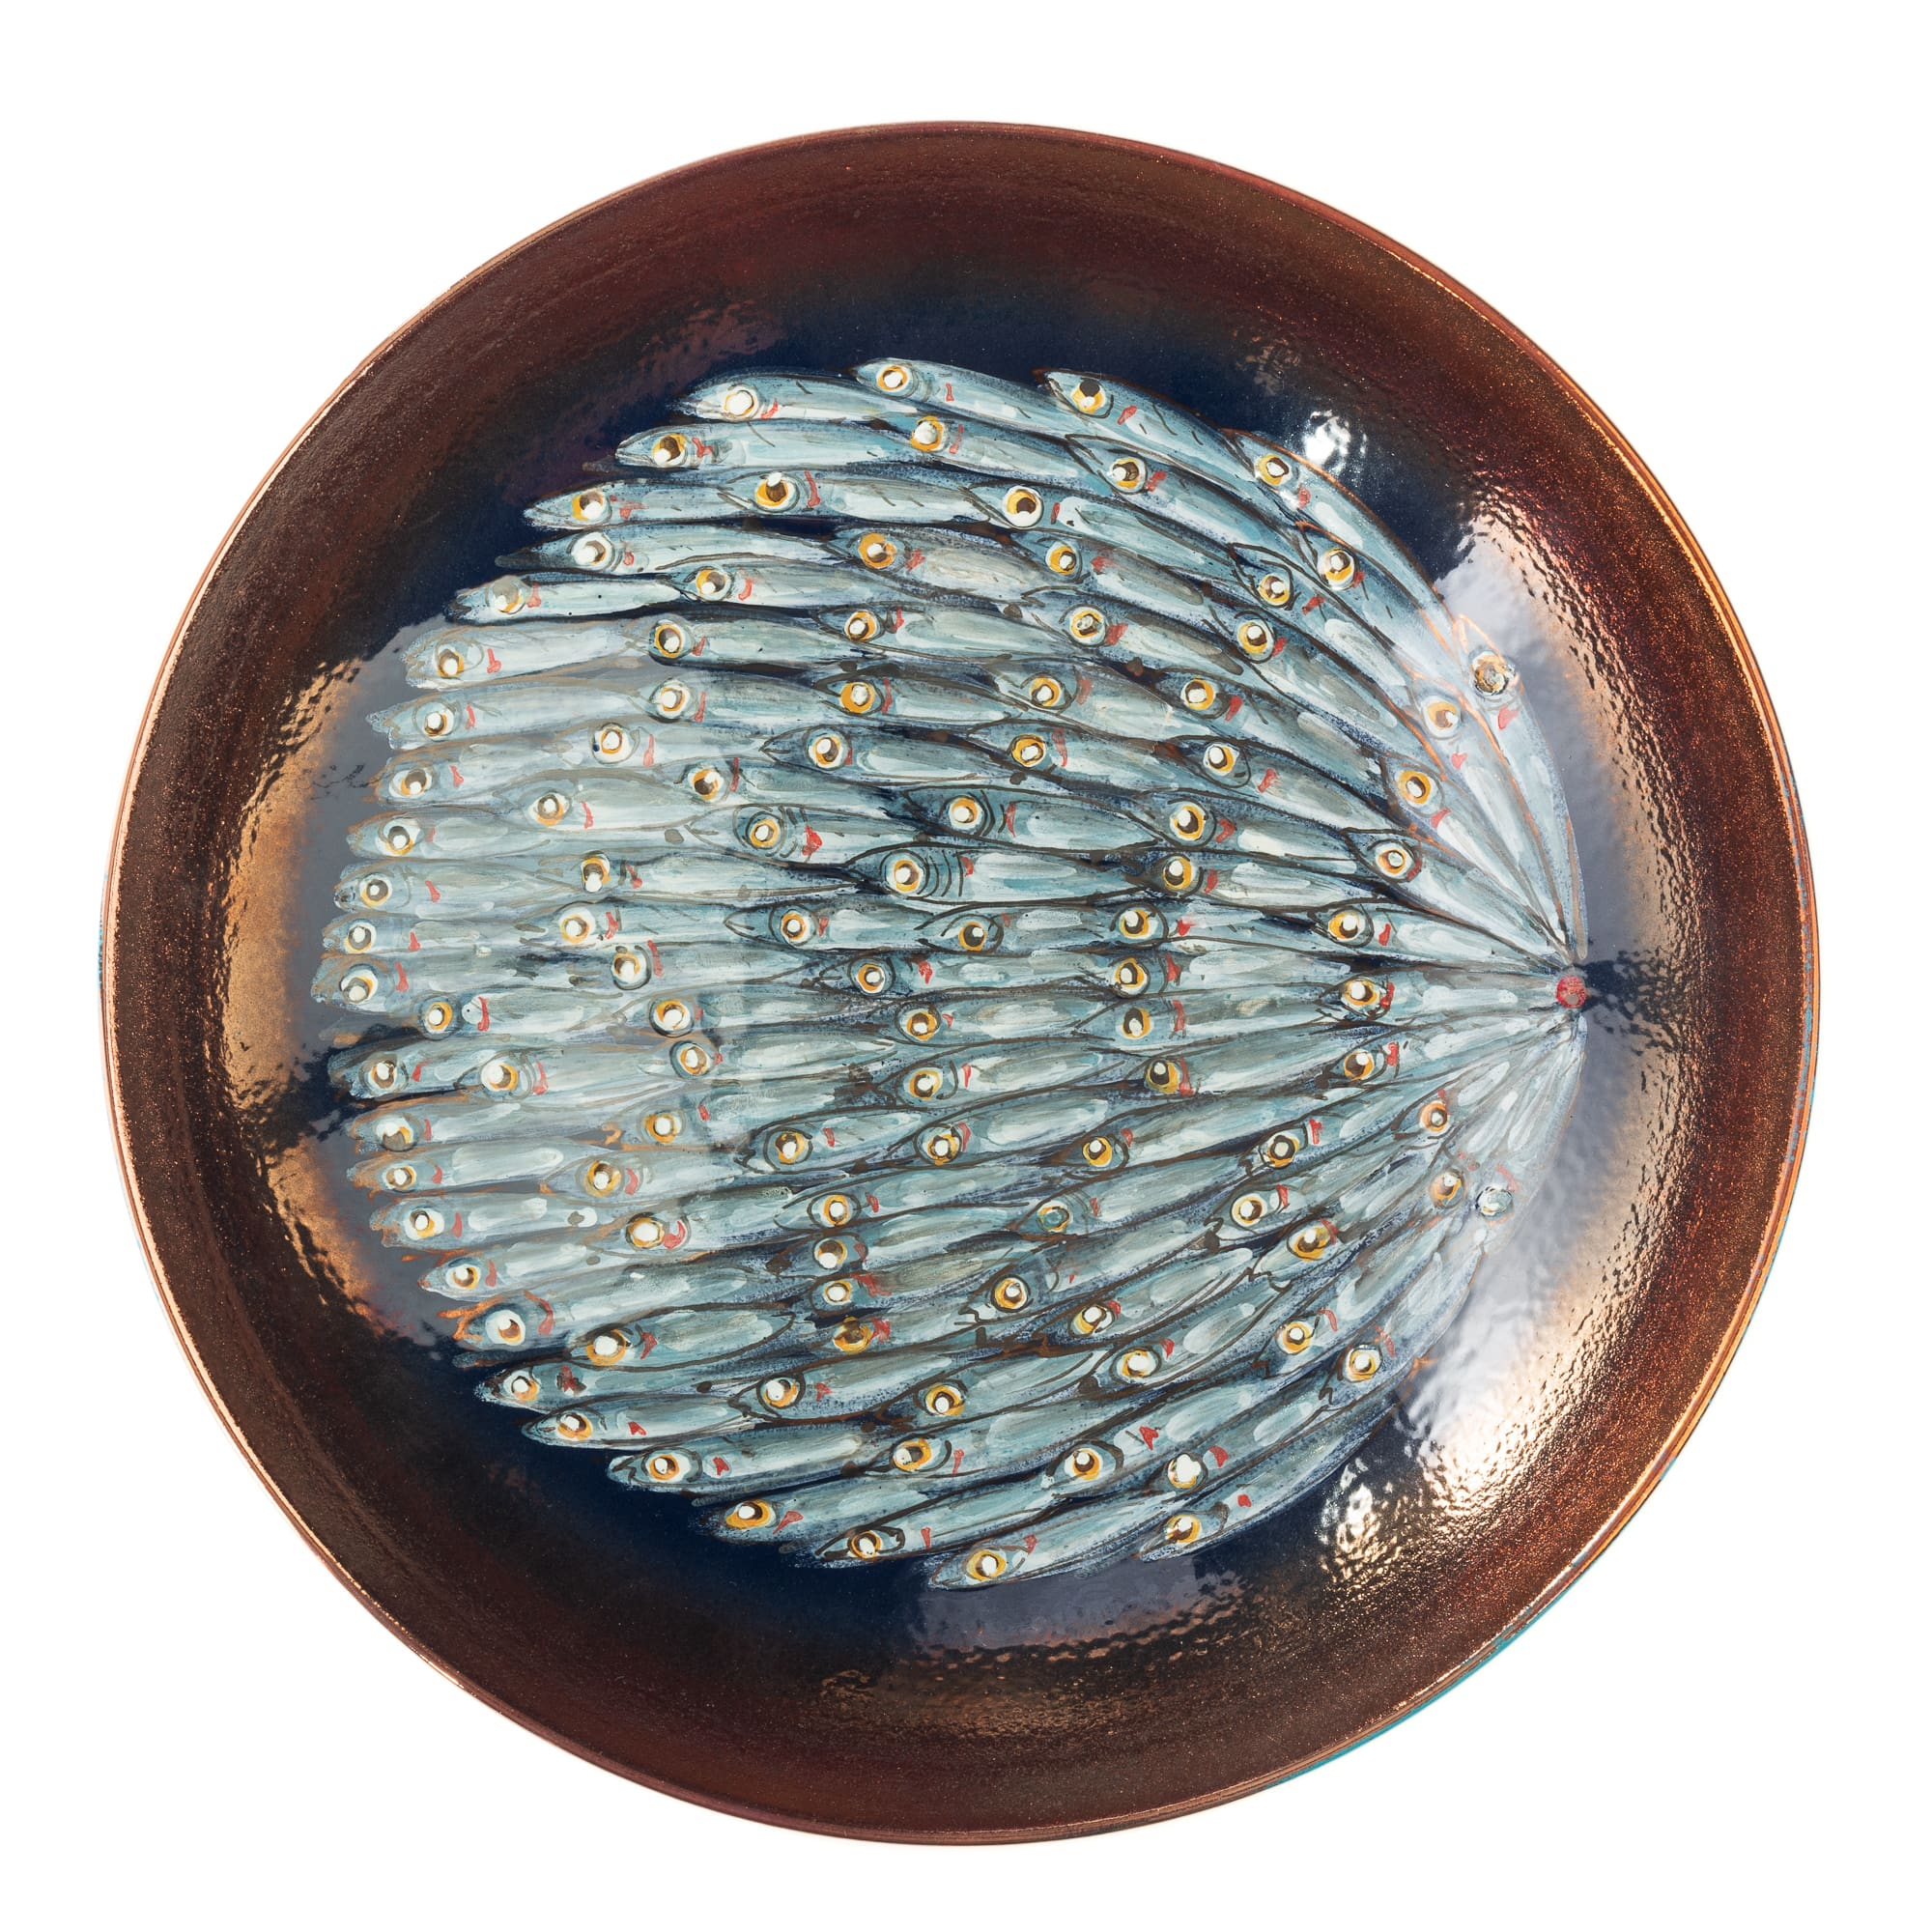 "Vignoli 13"" School of Anchovies with Copper Ring Centerpiece"